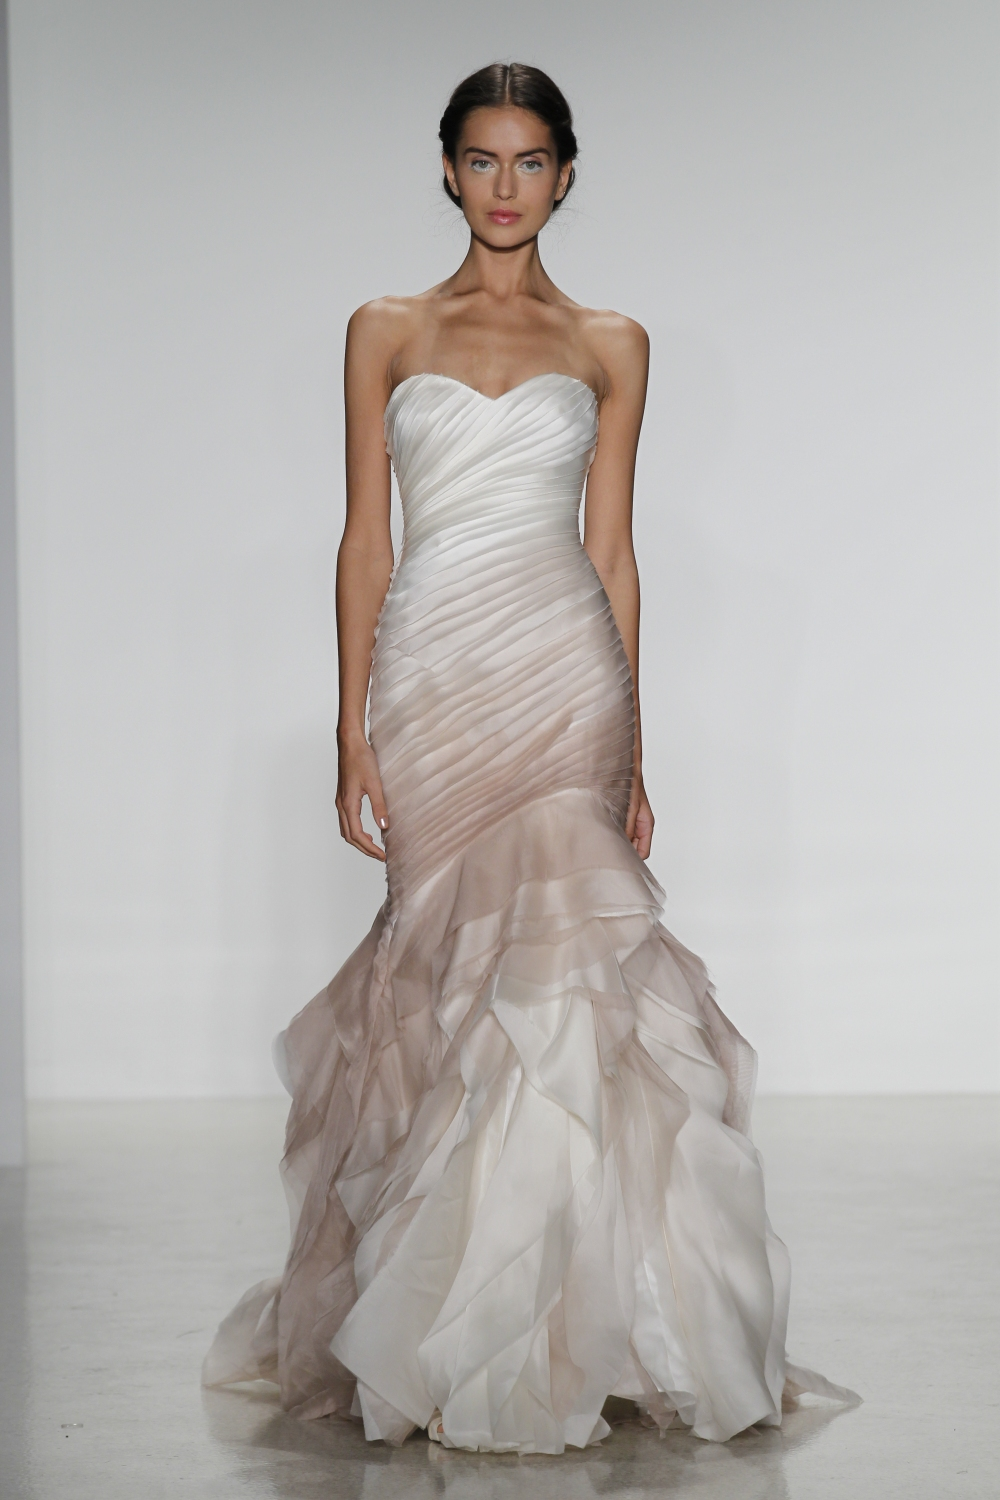 silk organza fit to flare wedding dress with raw edge layered bodice in vintage rose ombre and cascading slim skirt,